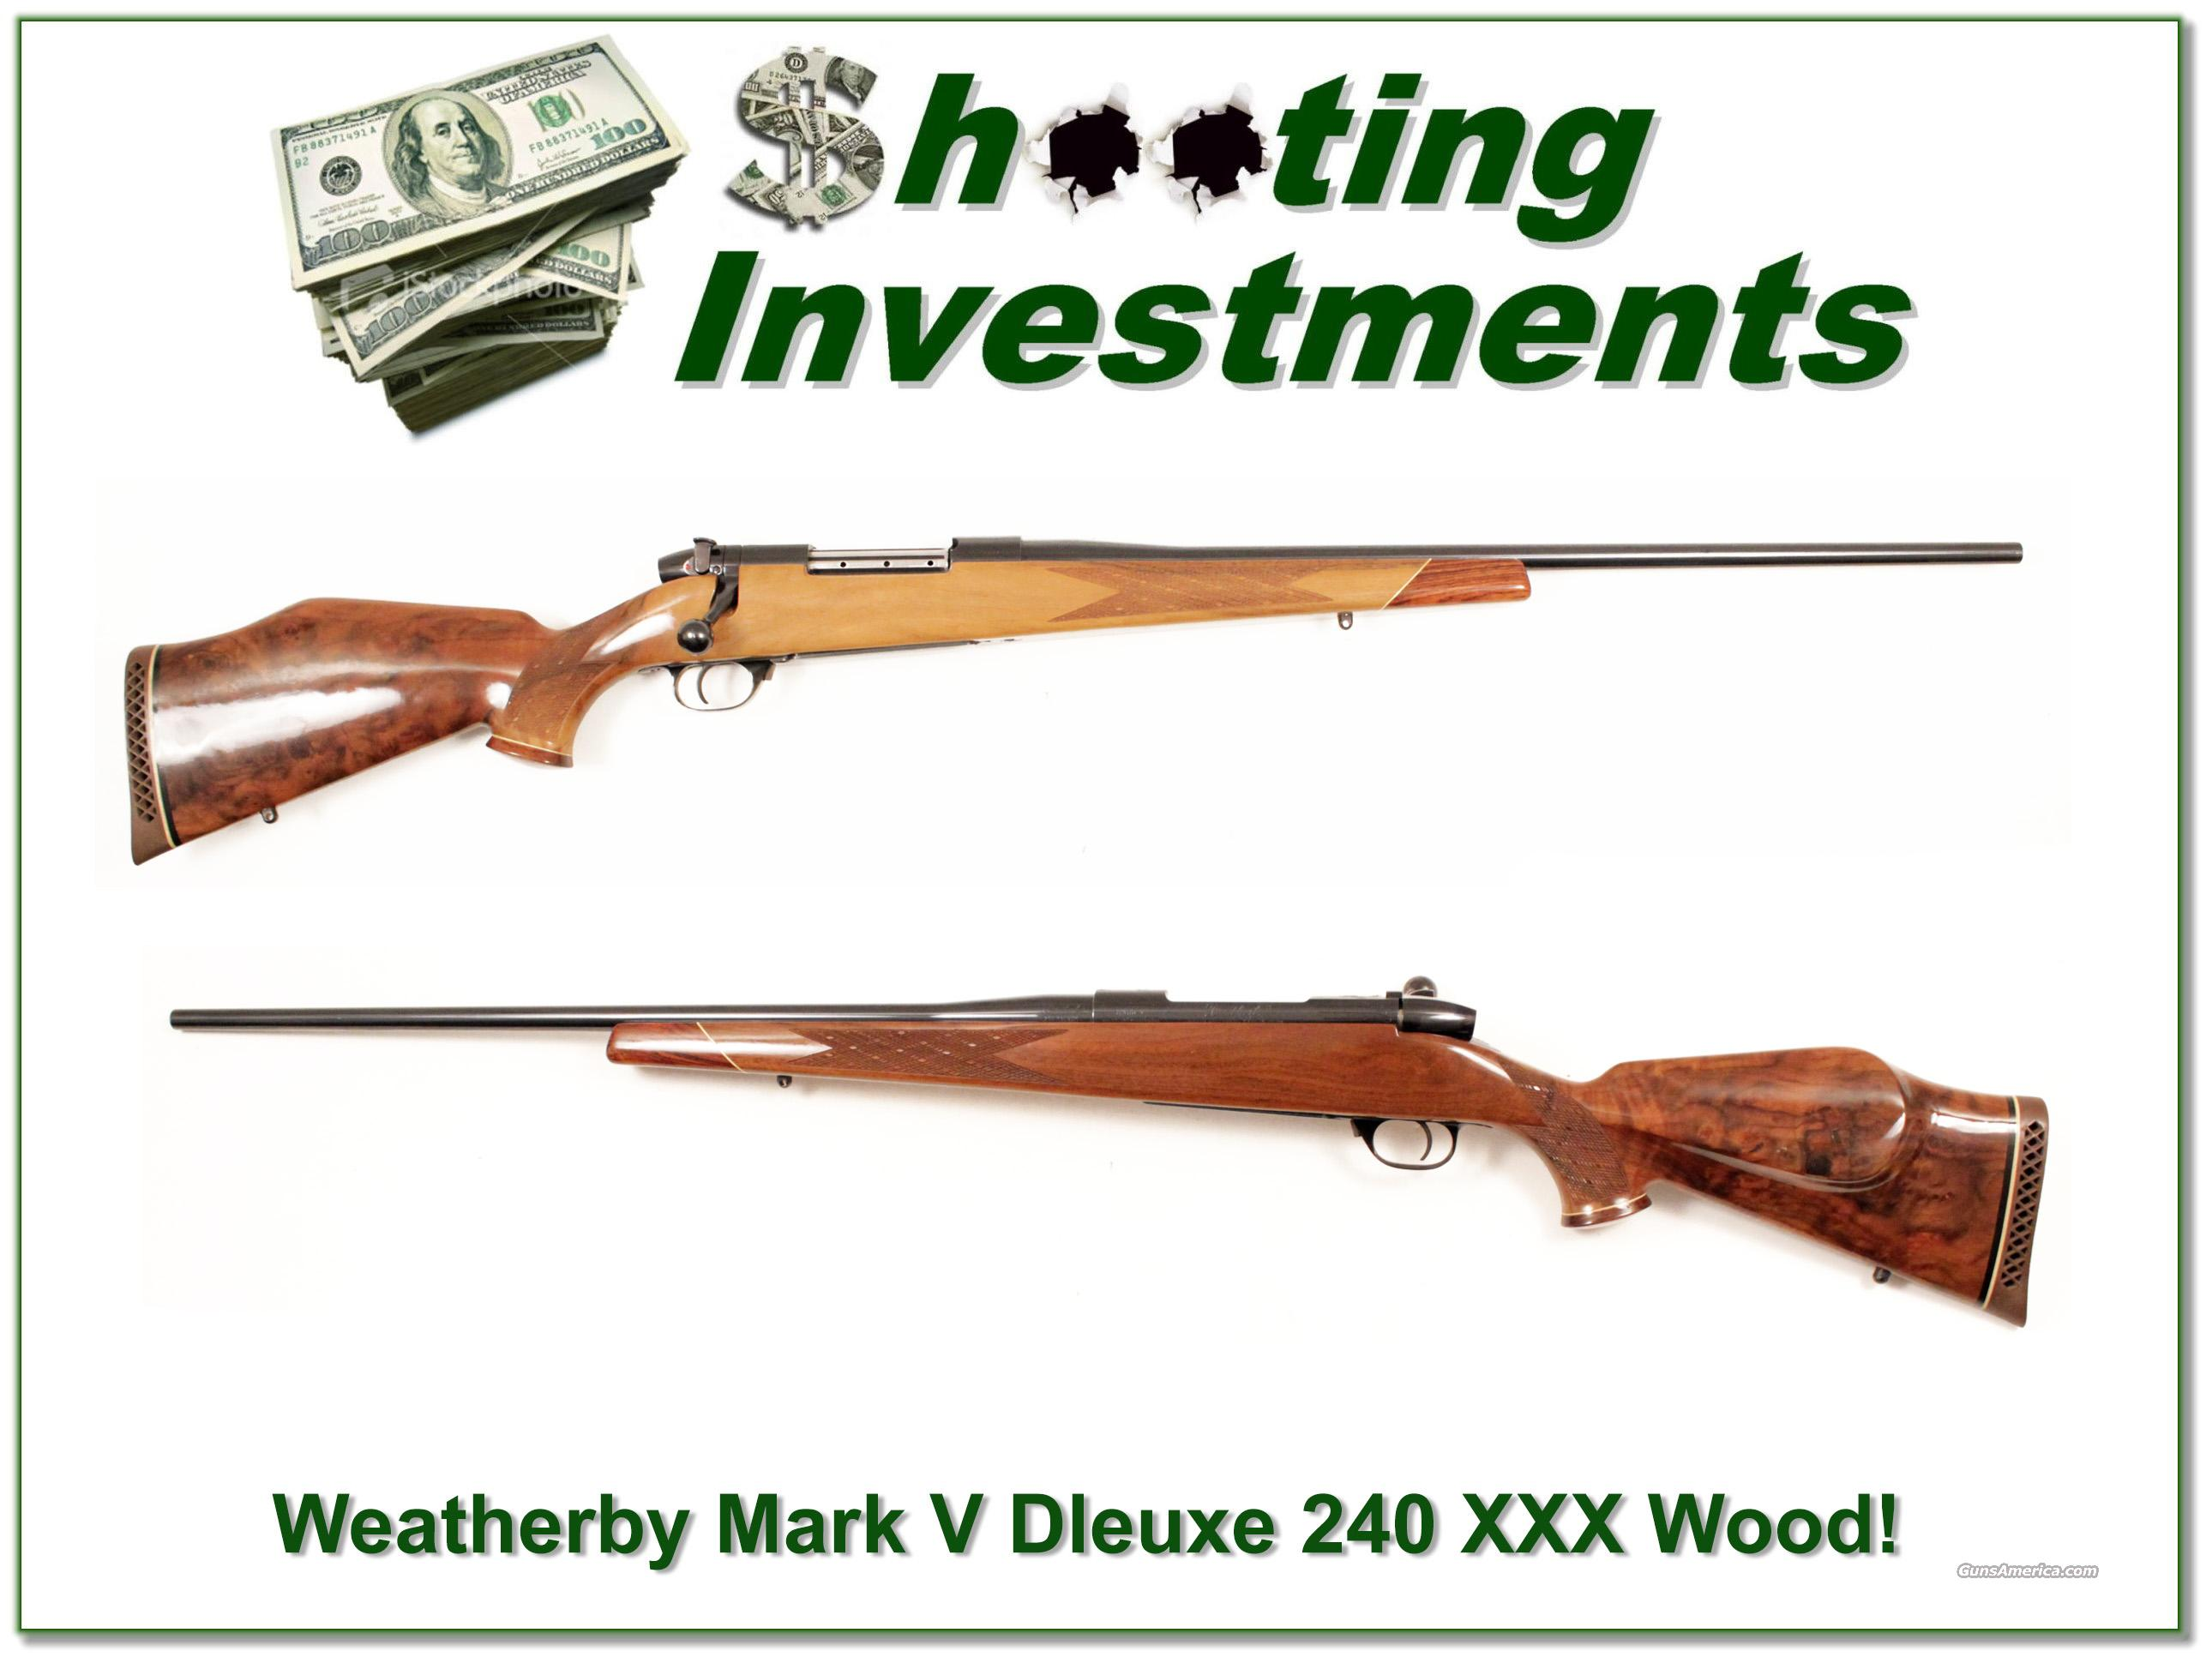 Weatherby Mark V 9 Lug 240 Incredible Wood!  Guns > Rifles > Weatherby Rifles > Sporting